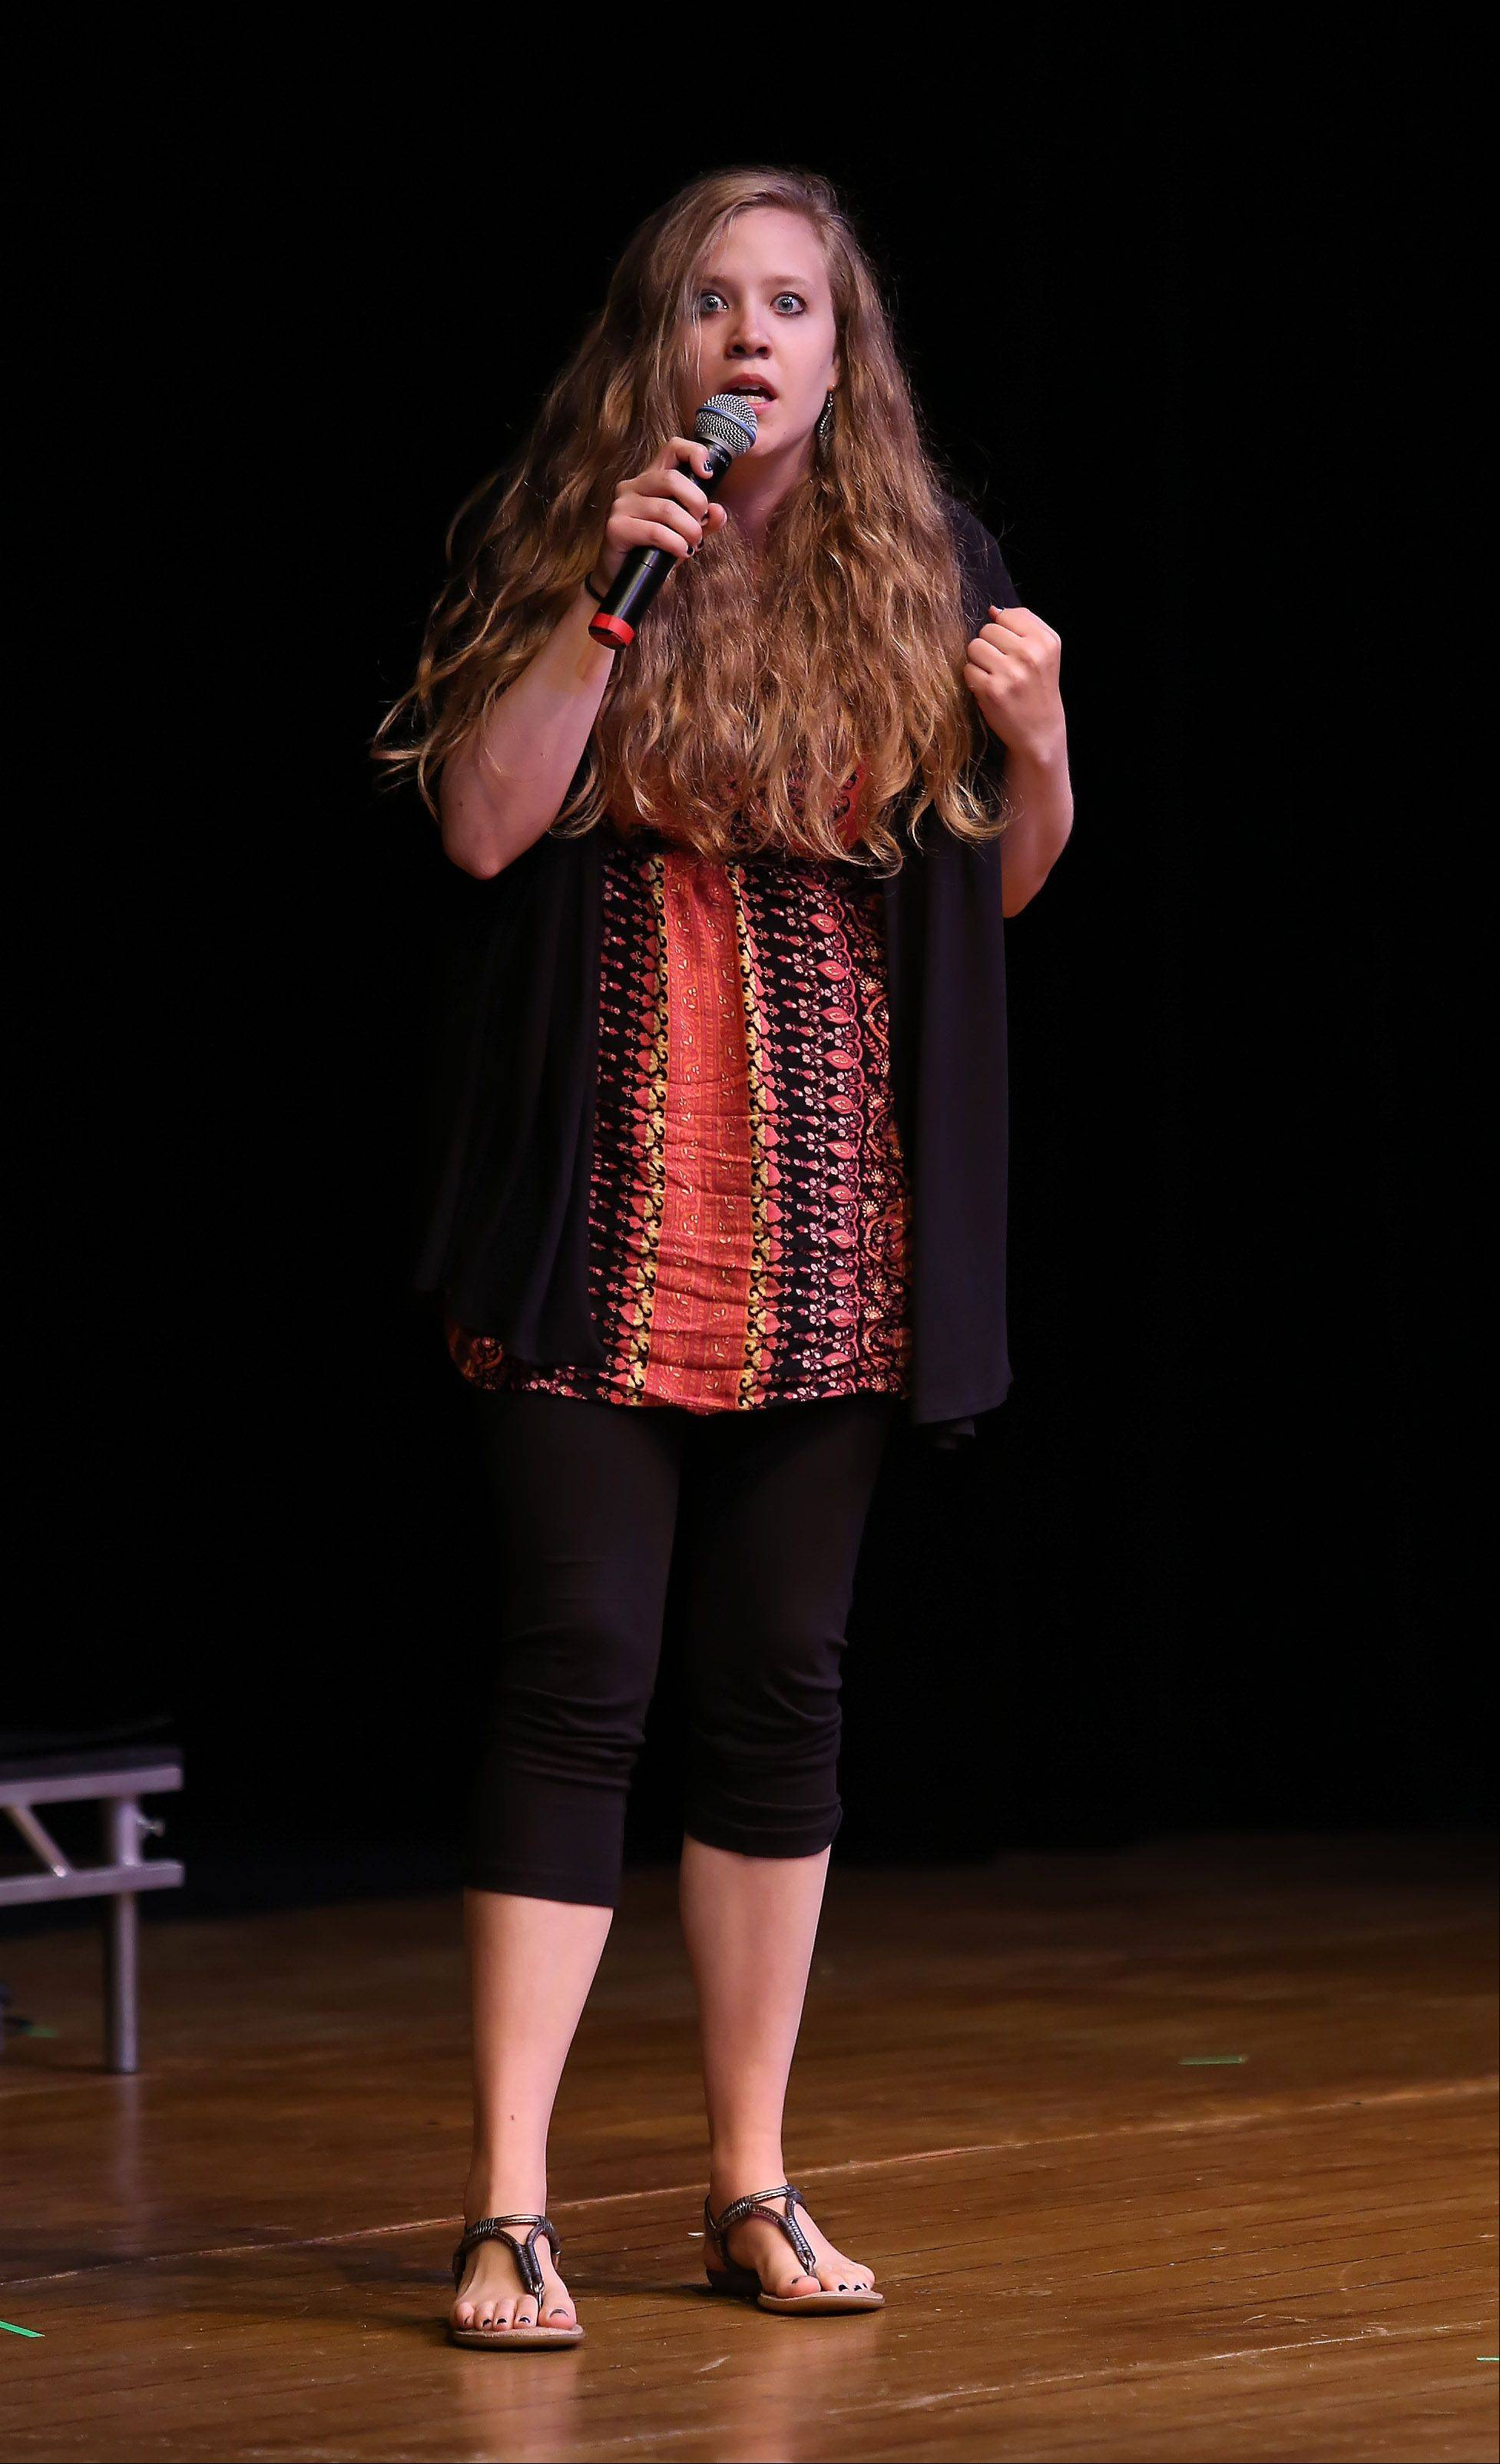 Comedienne Tiffany Streng of Arlington Heights performs her routine during Suburban Chicago's Got Talent competition Sunday night at the Metropolis Performing Arts Centre in Arlington Heights. The summer long talent contest is presented by the Daily Herald and sponsored by the Arlington Heights Chamber of Commerce.